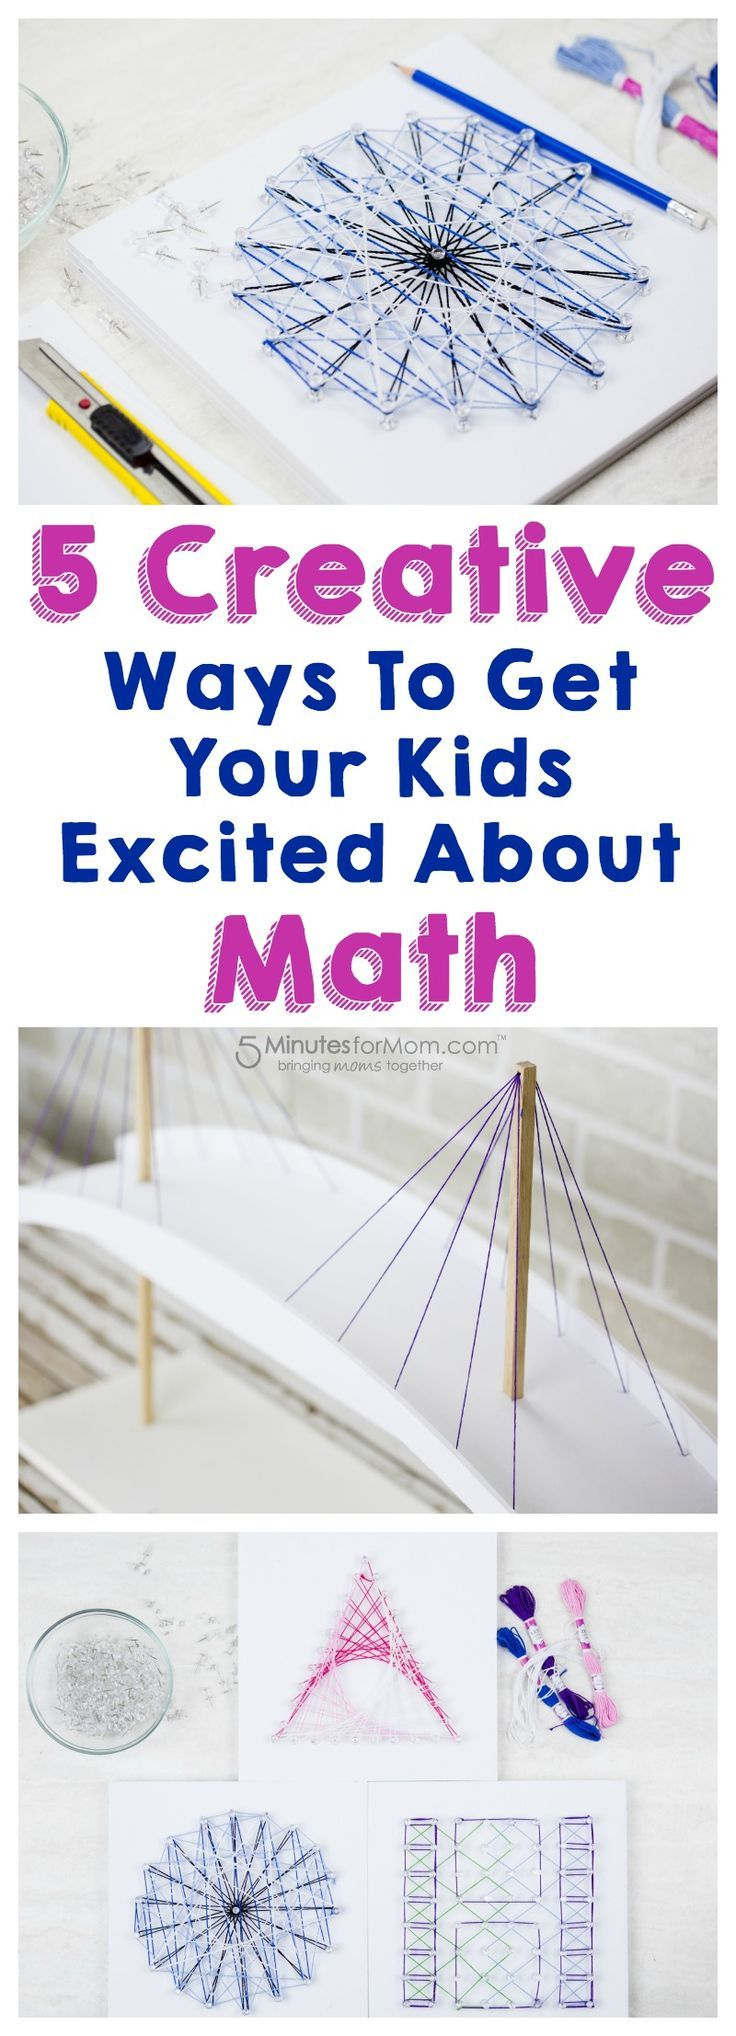 5 Creative Ways To Get Your Kids Excited About Math - With these creative tips, you can inject some mathematical learning into family fun time and make learning math more fun for your kids. Sponsored.